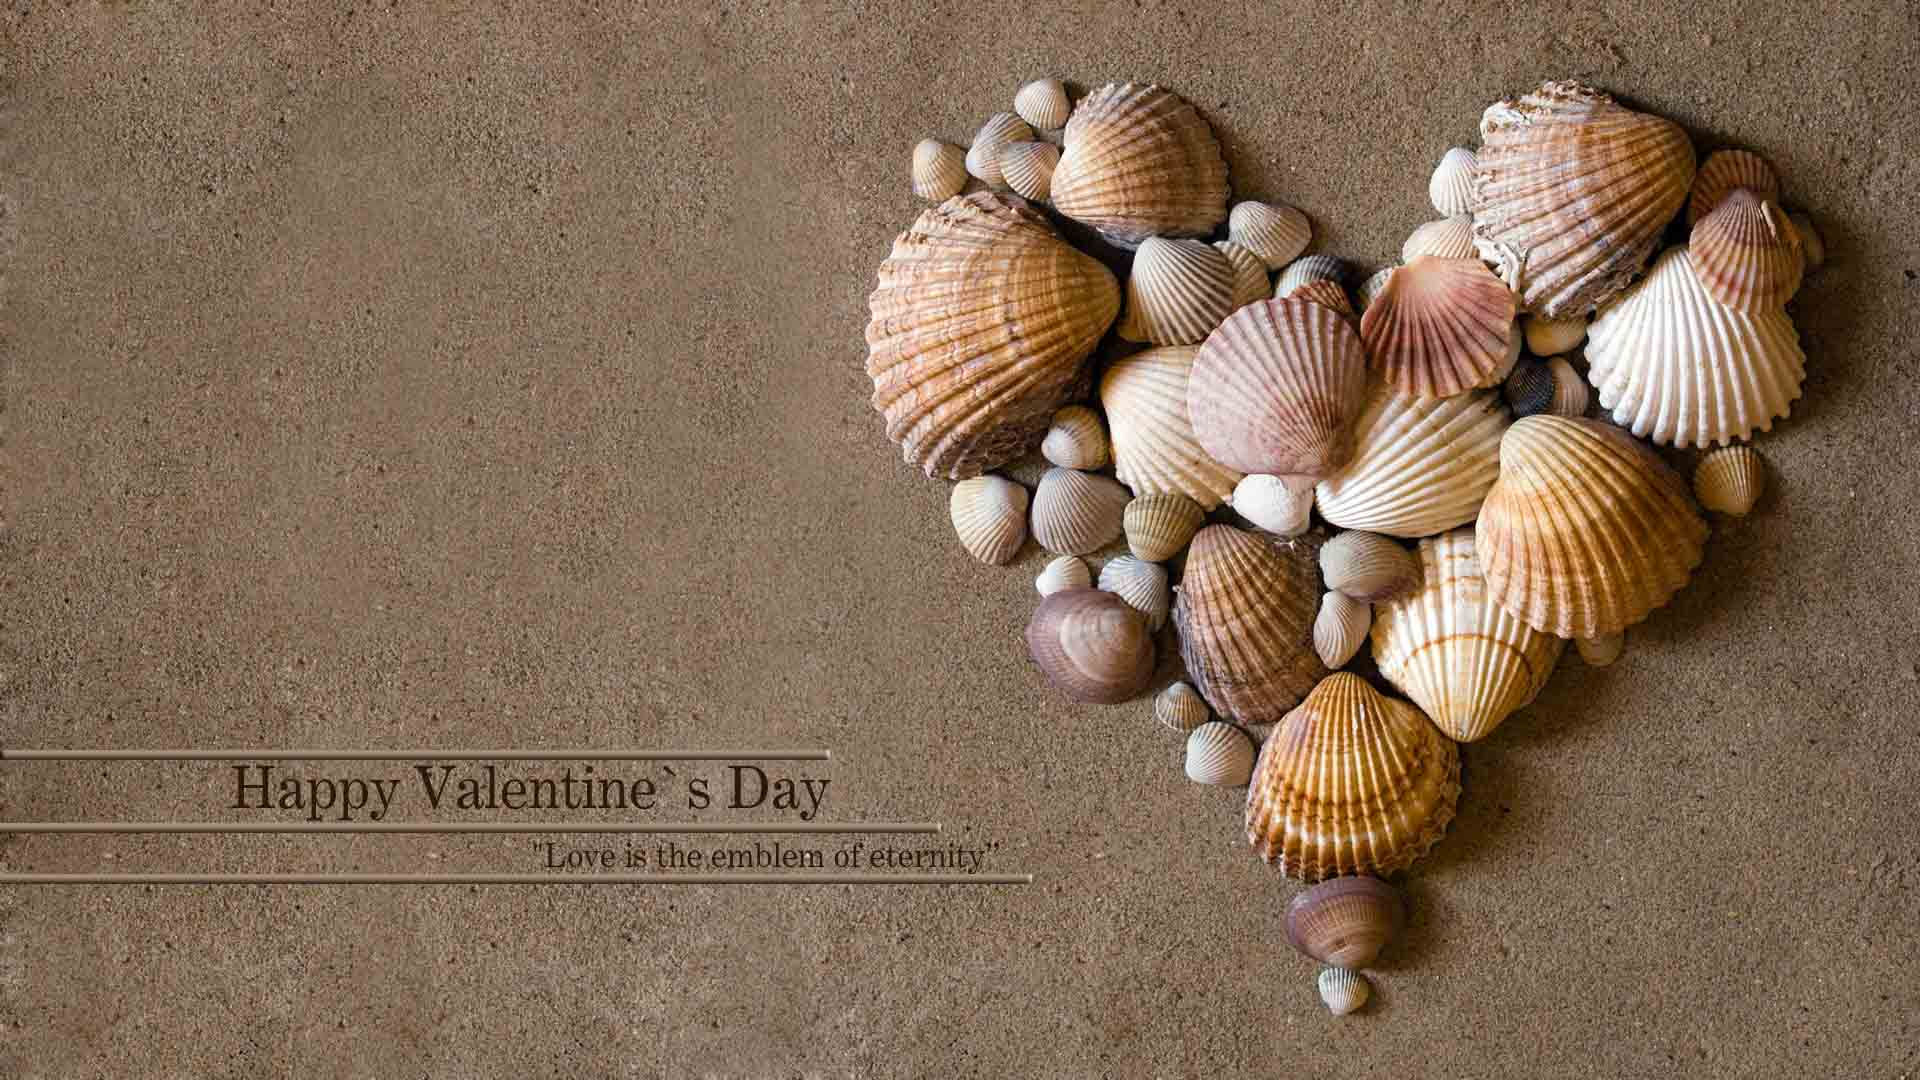 Happy Valentines Day hd background picture